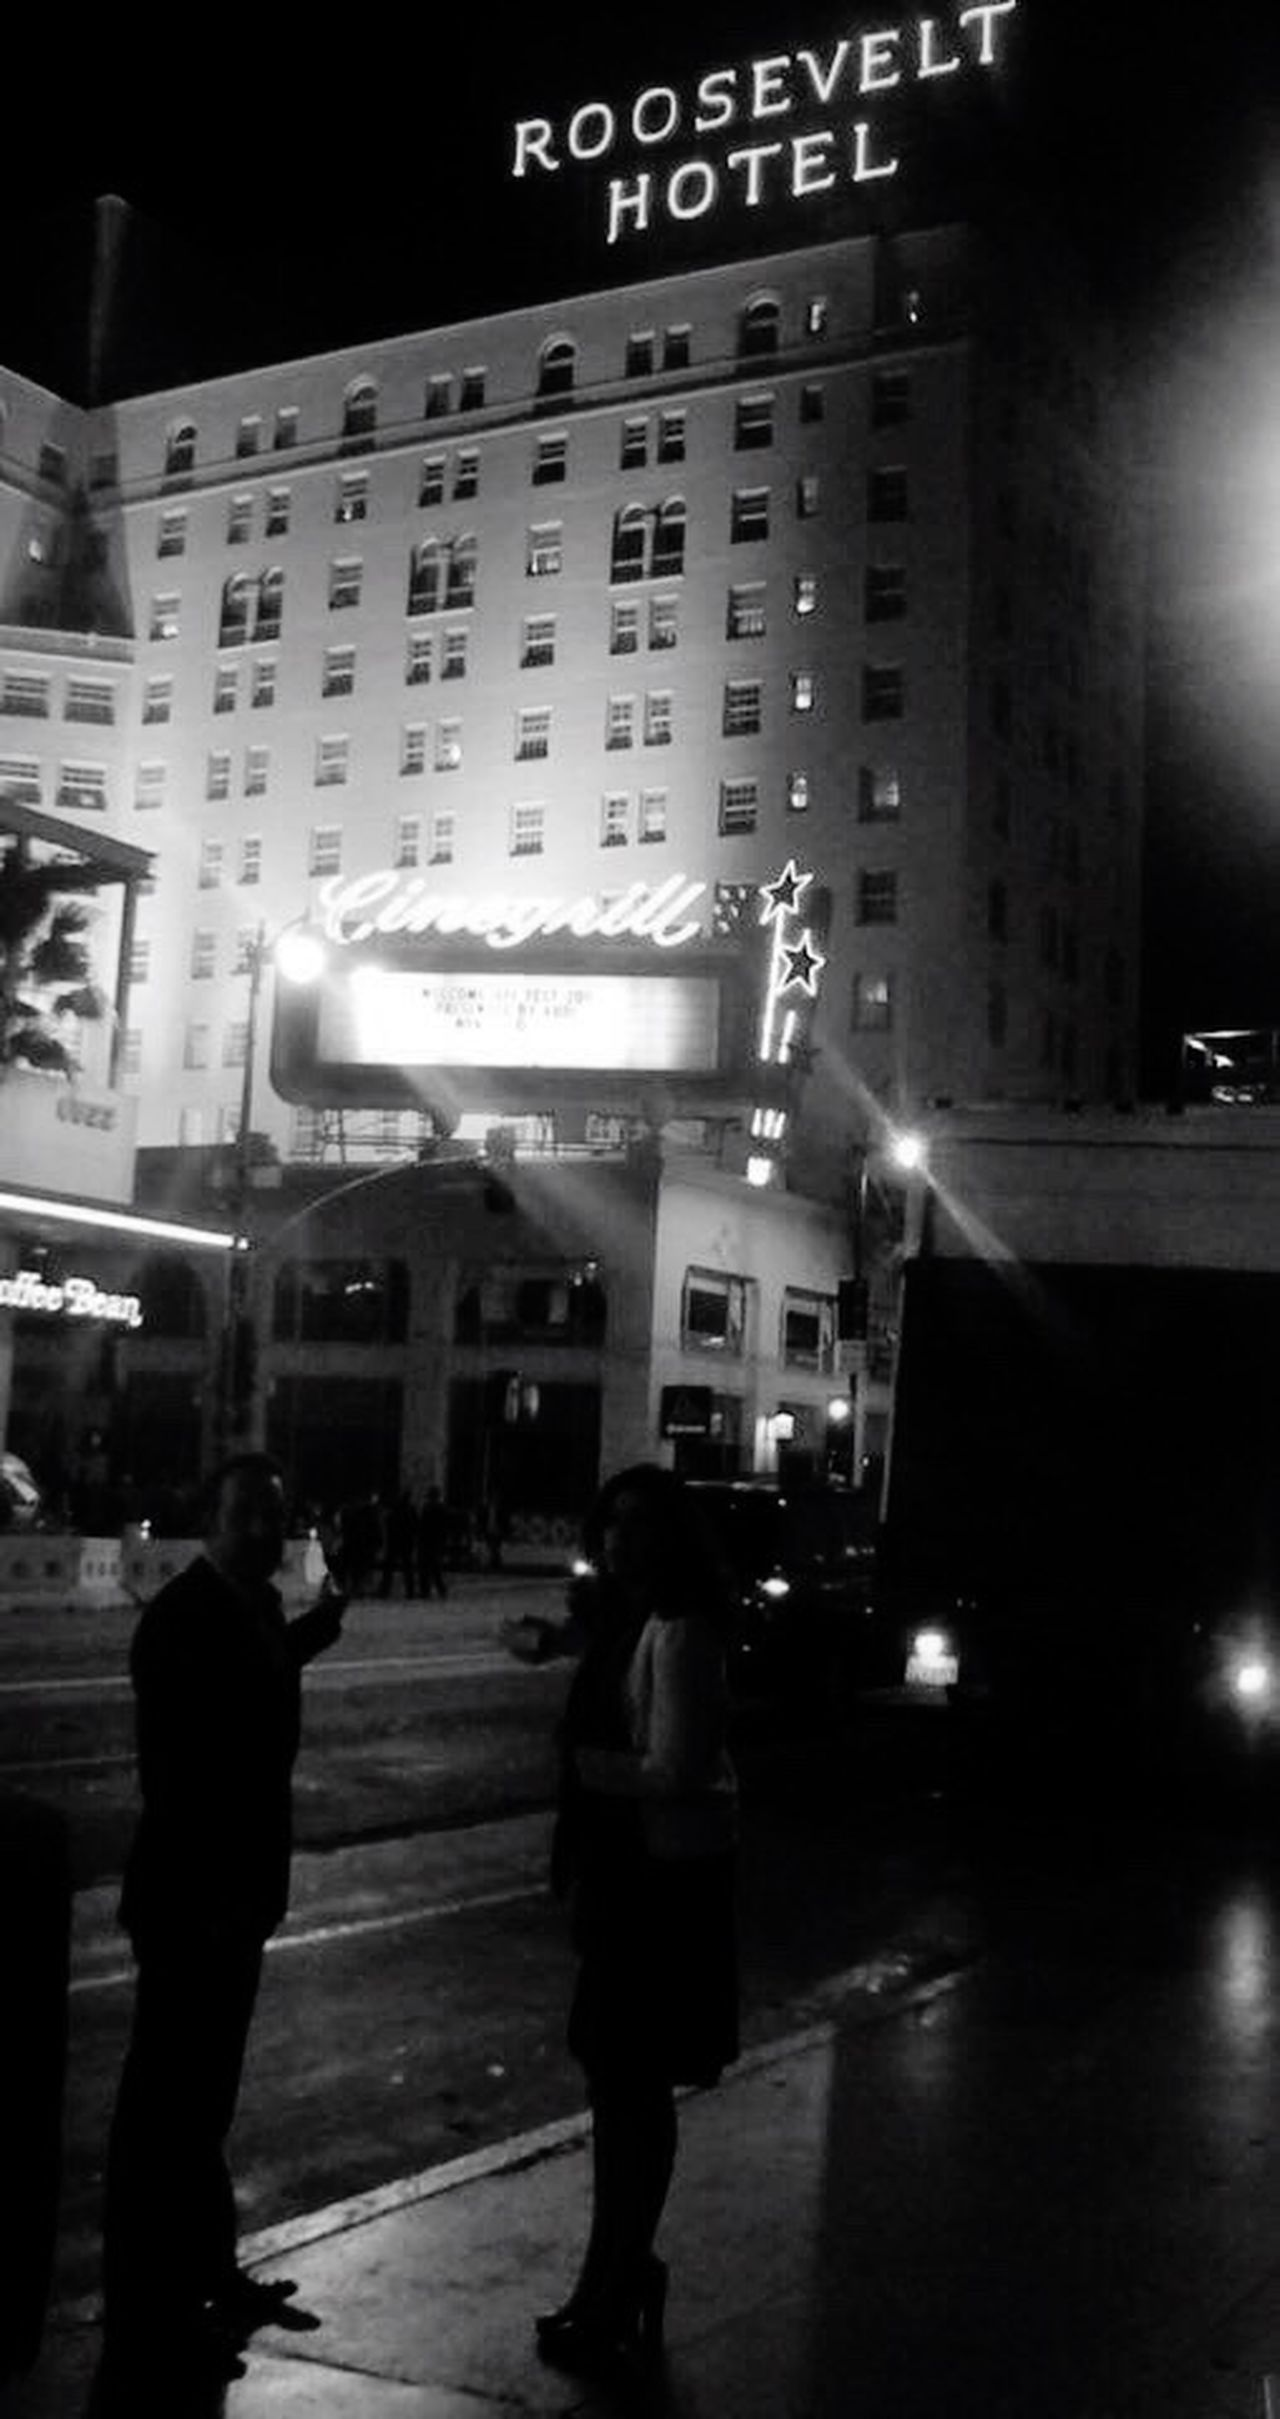 QVHoughPhoto Hollywood Losangeles HollywoodBoulevard Jeandujardin Theartist Hotelroosevelt Roosevelthotel Blackandwhite